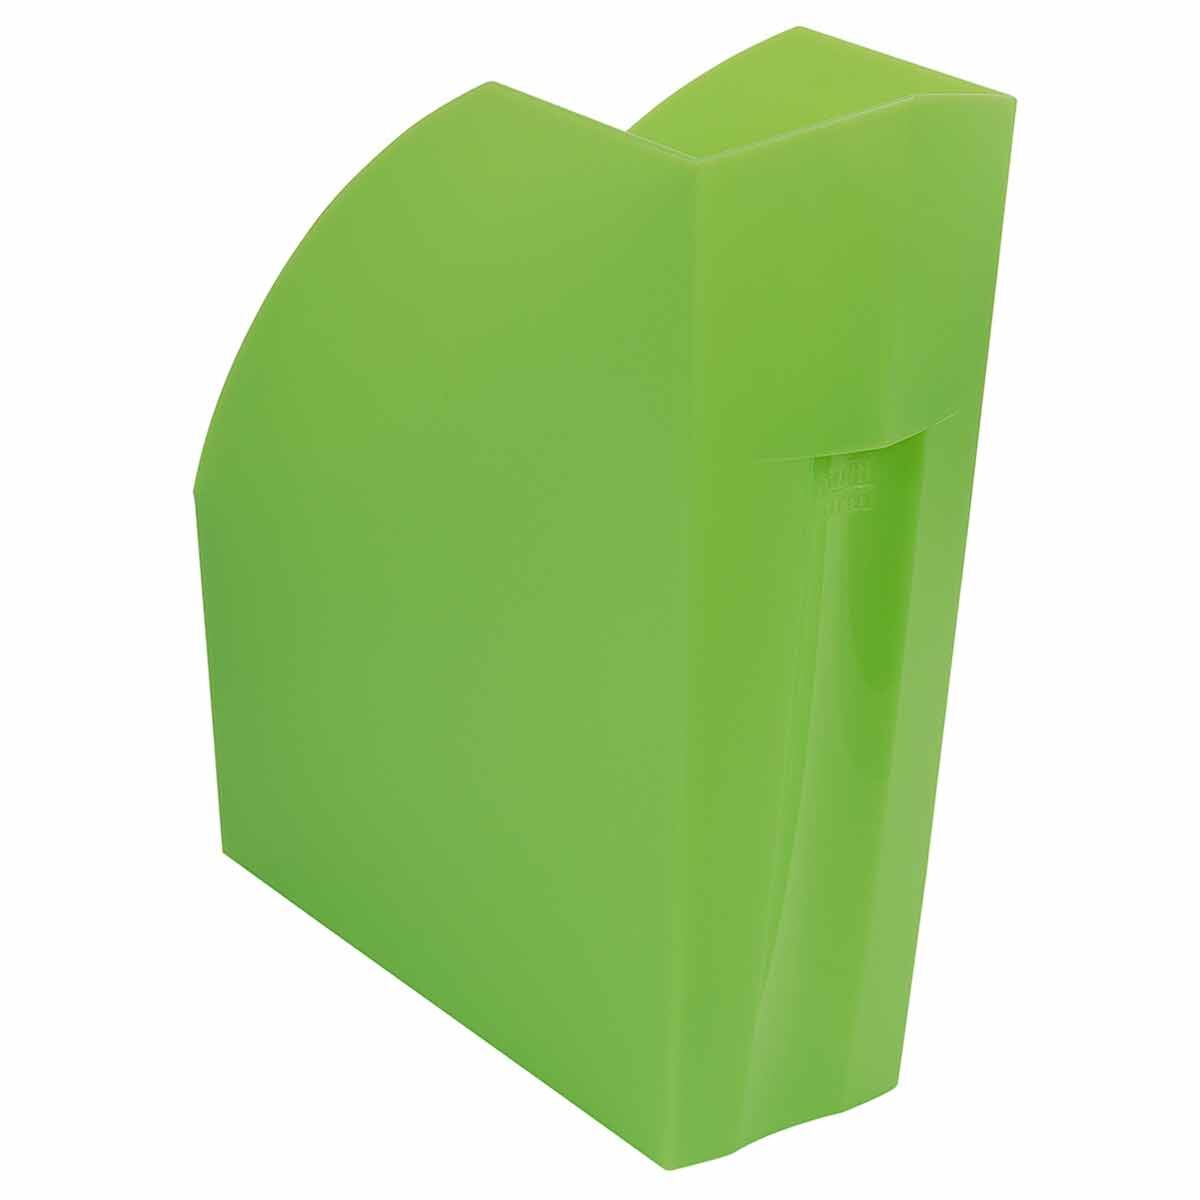 Exacompta Linicolor Magazine File Pack of 3 Apple Green